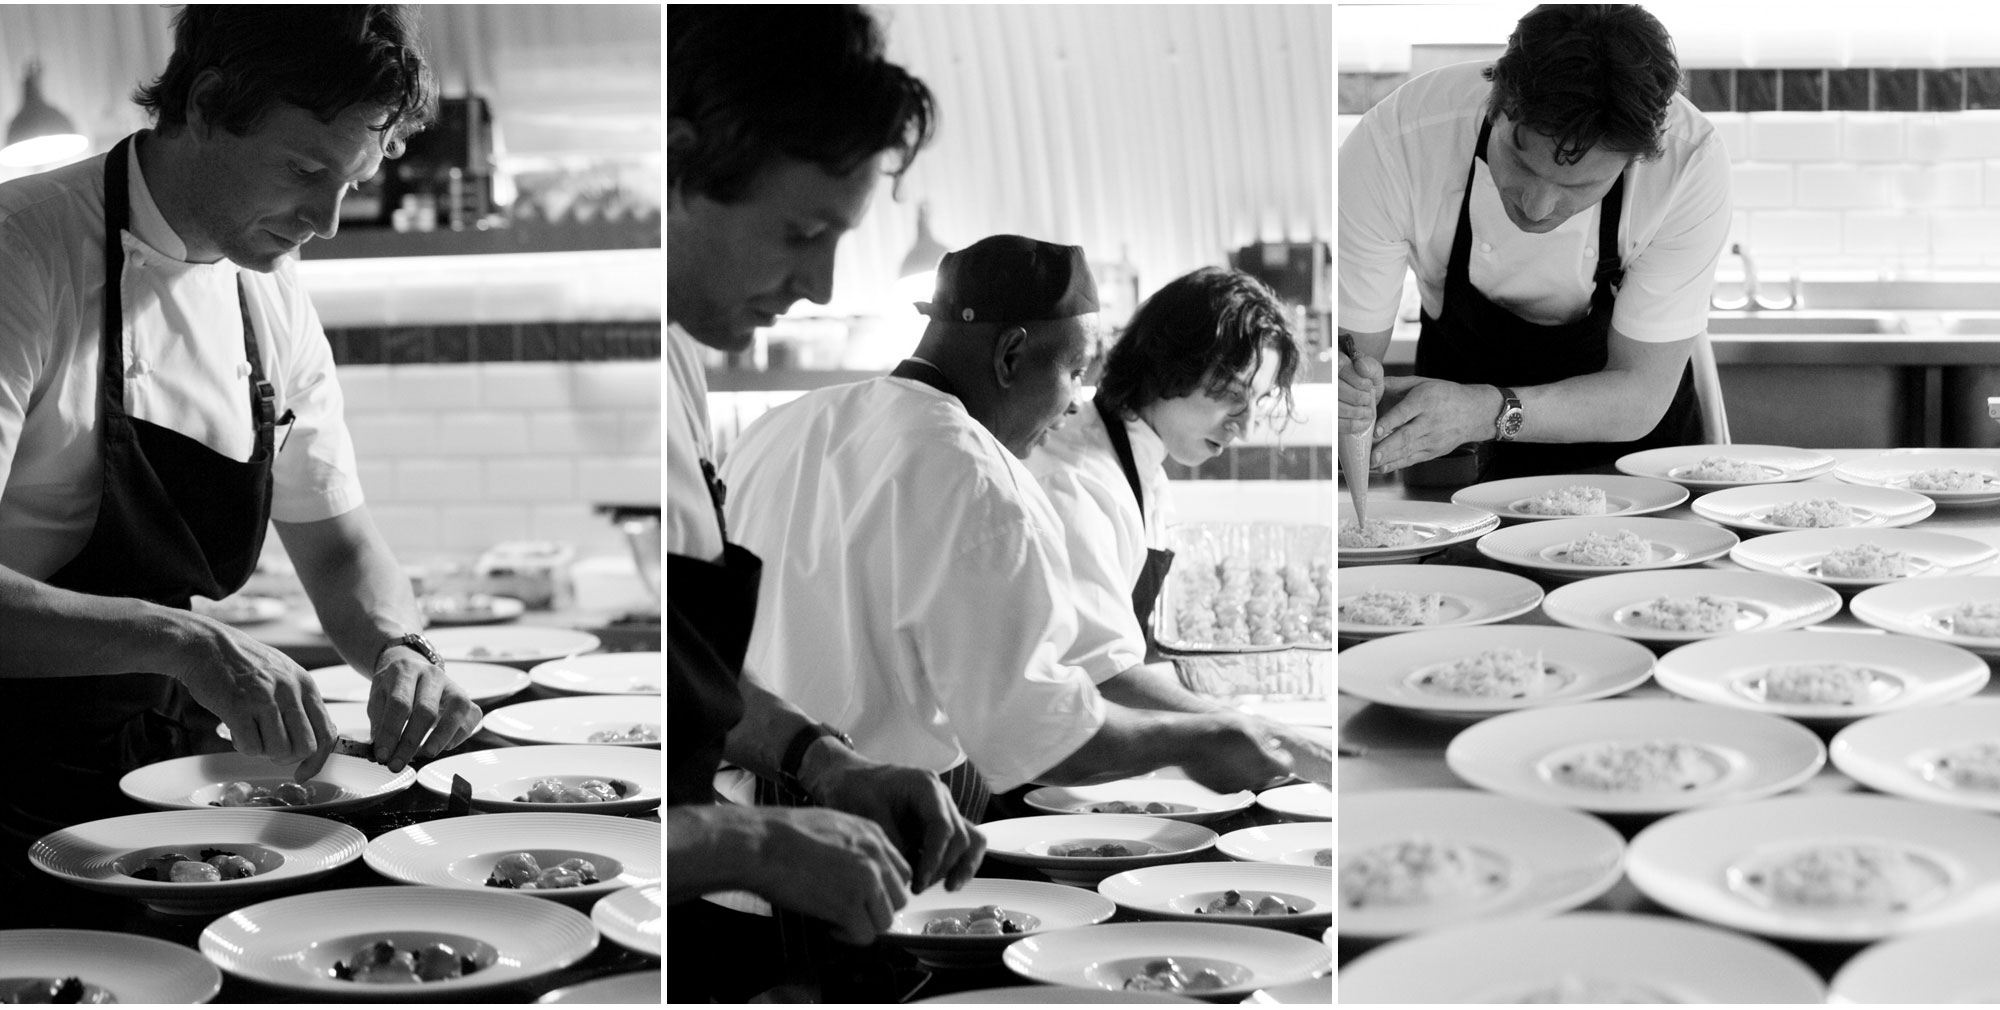 Keith Goddard, fixer-upper of luxury lunches for designer brands like Alexander McQueen, Harvey Nichols and Whistles, and private chef for hire, is quite honestly the only chef you should book for your luxury evening in